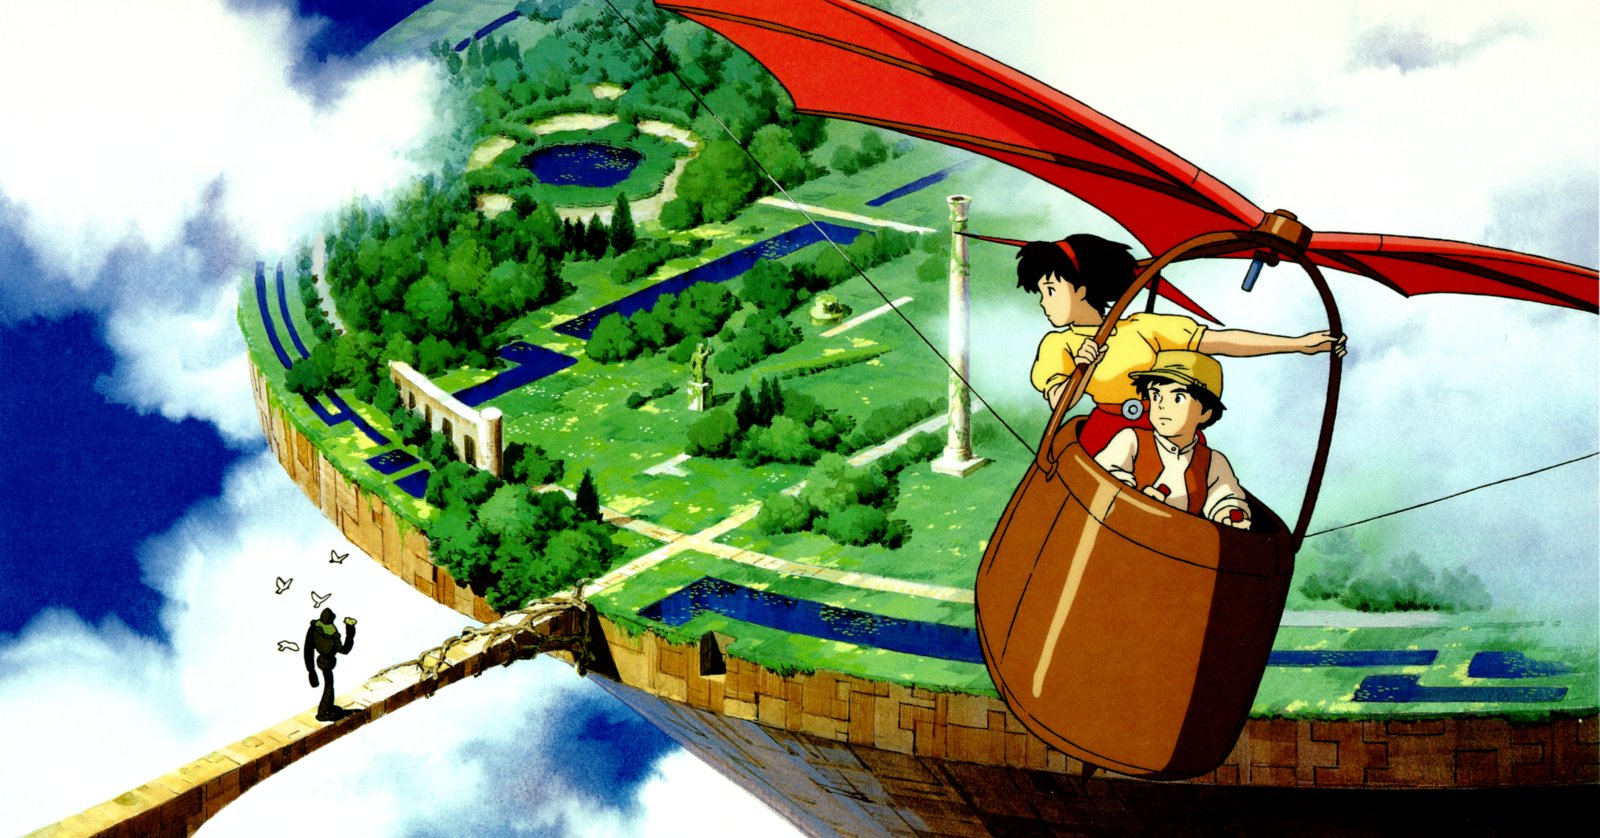 Sheeta and Pazu in the city in the clouds in Laputa: Castle in the Sky (1986)